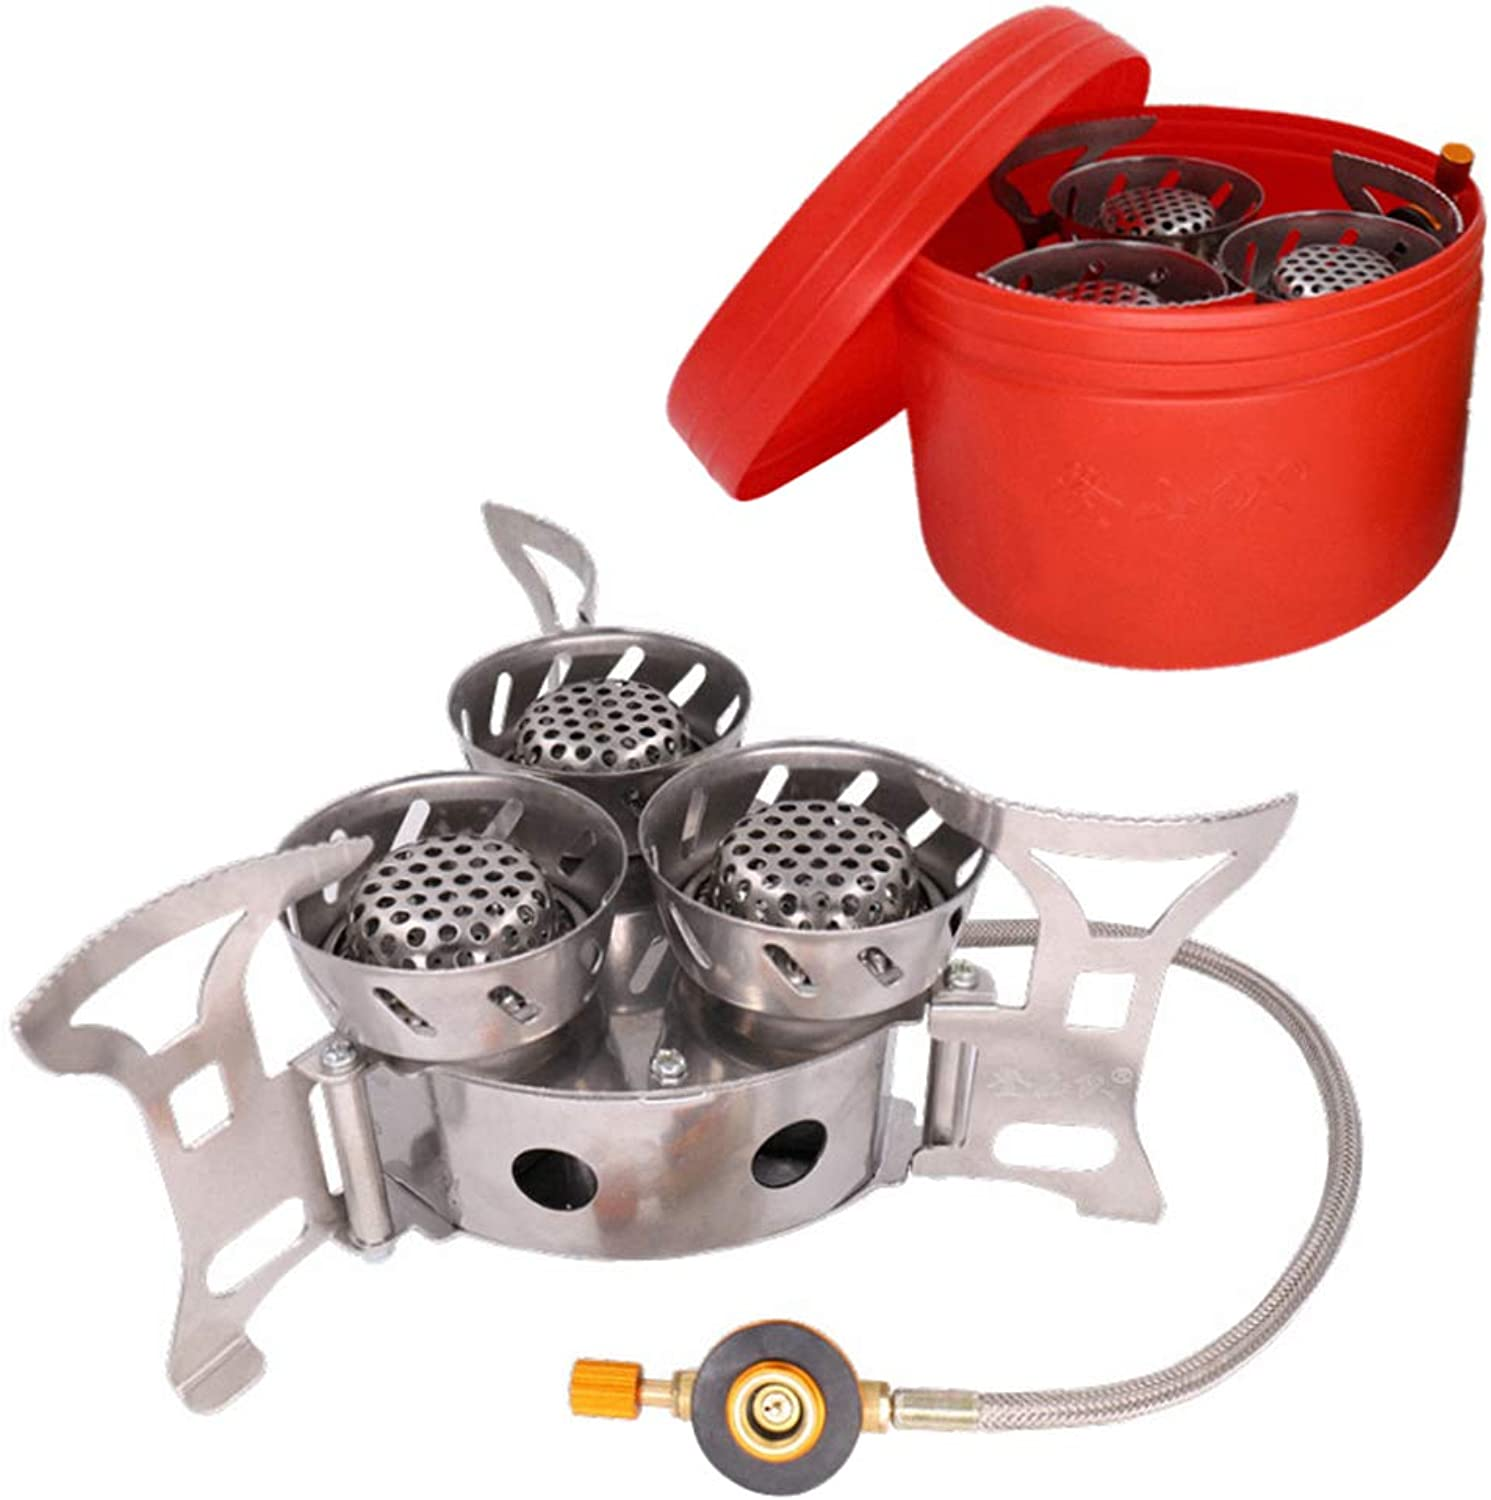 Camping Gas Stove, 3 Heads 11000W Big Power Windproof Backpacking Stove, Foldable Split Furnace Outdoor Camping Cooking Stove Butane Burner